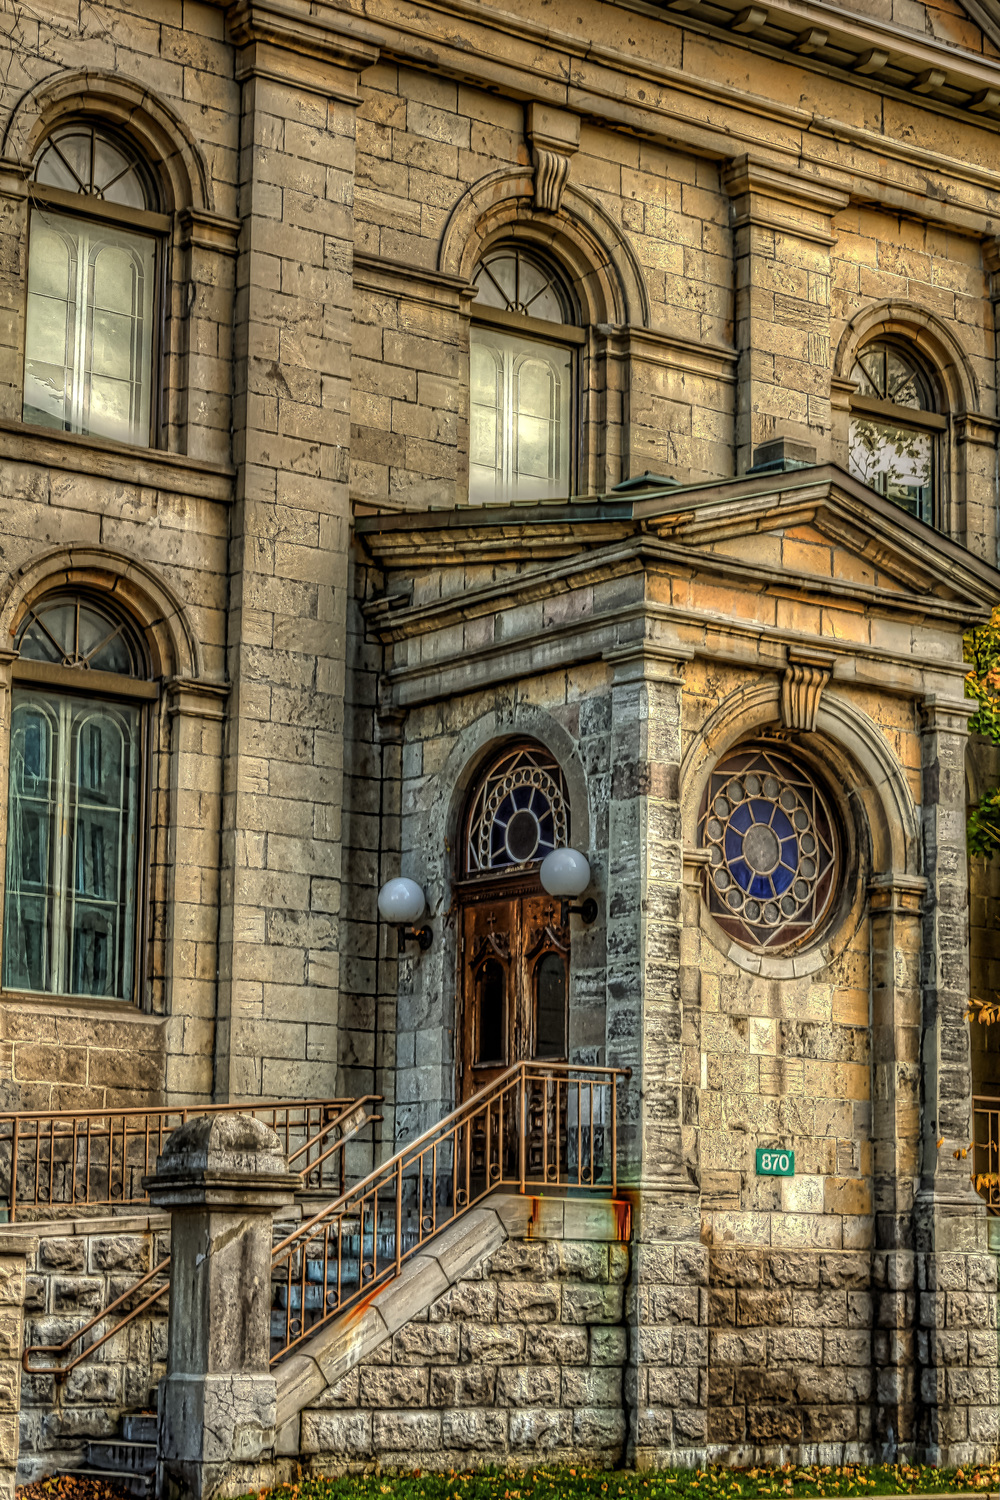 20141026_Photos Walk-Ste. Catherine E-St. Hubert_IMG_9719_20_21tonemapped-M.jpg